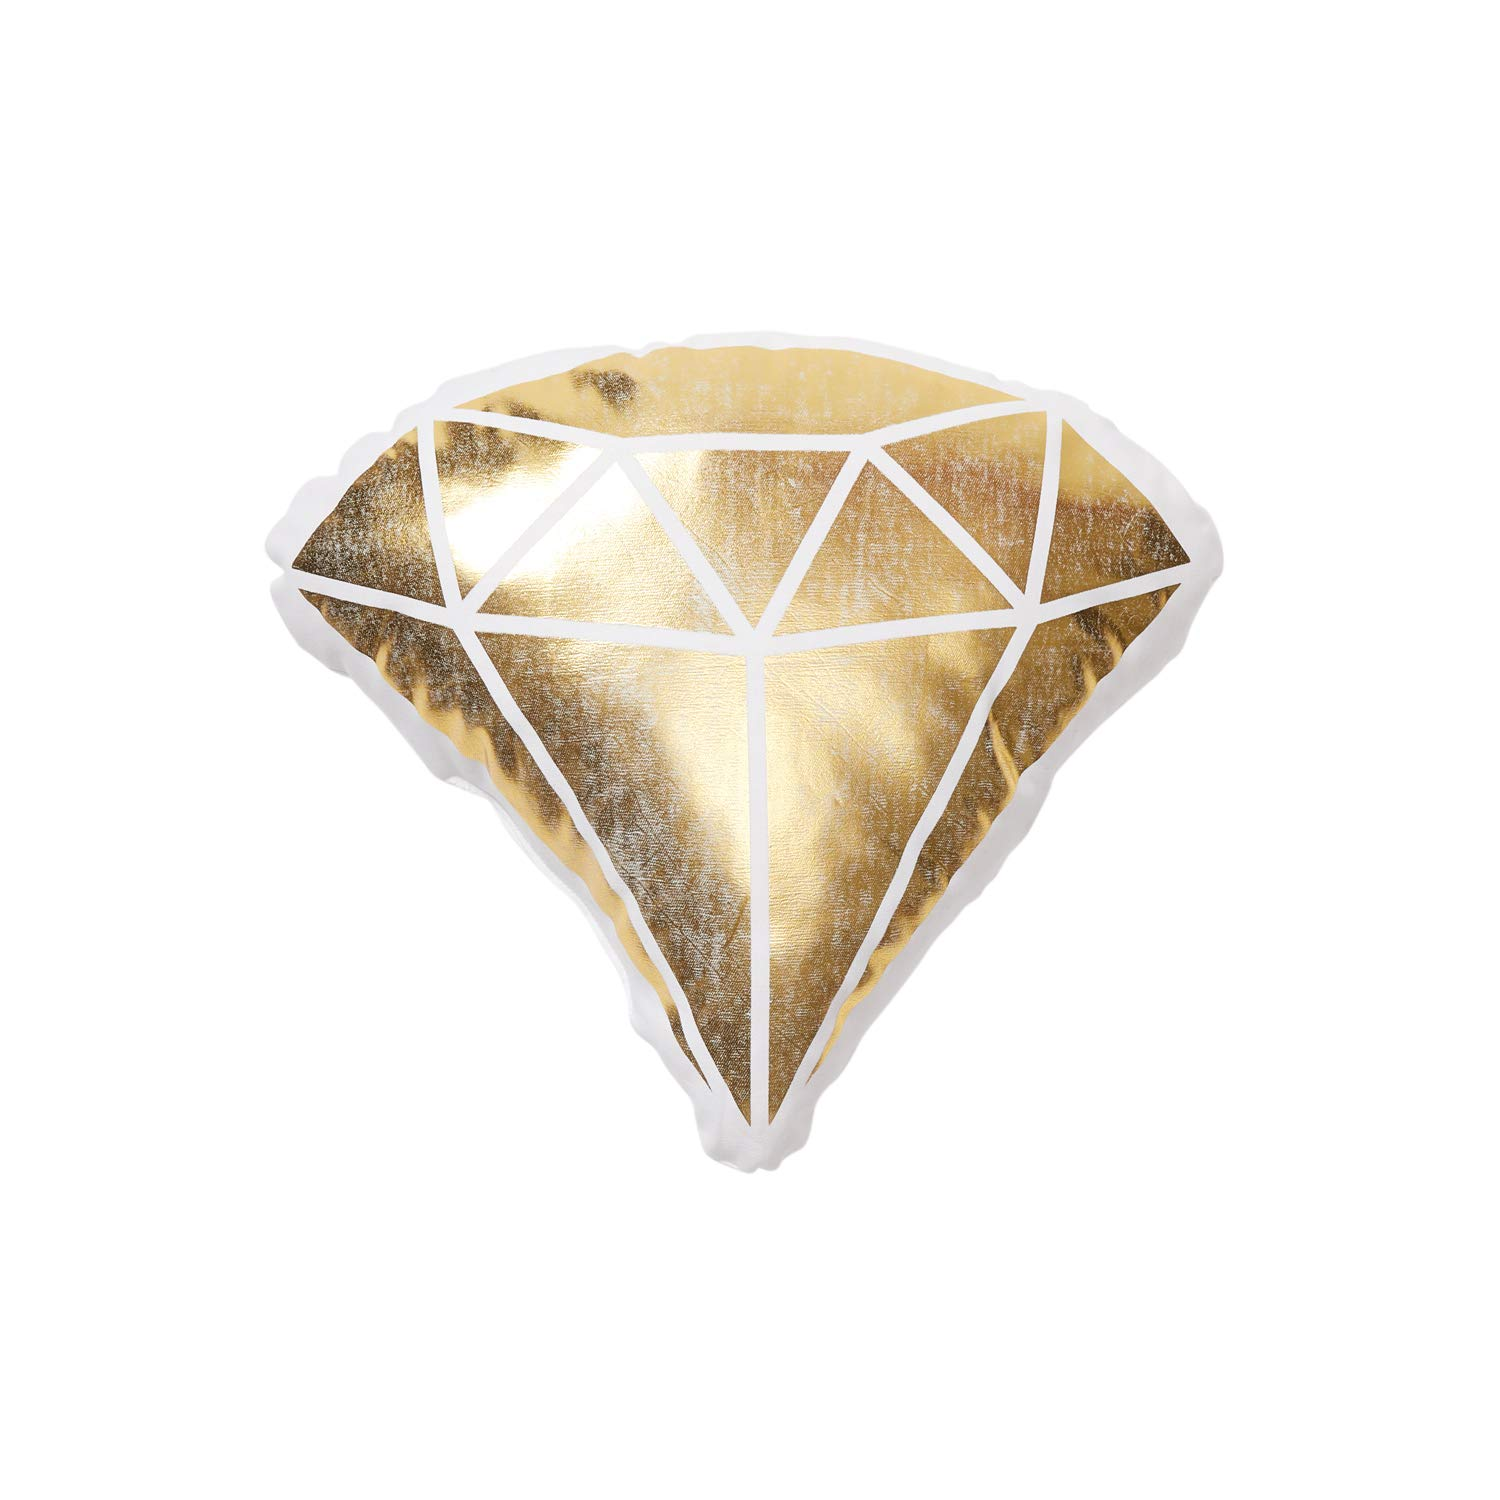 Buy Dormify Diamond Cut Accent Pillow Glam Dorm Room Decor Gold 15 In X 13 In Online At Low Prices In India Amazon In